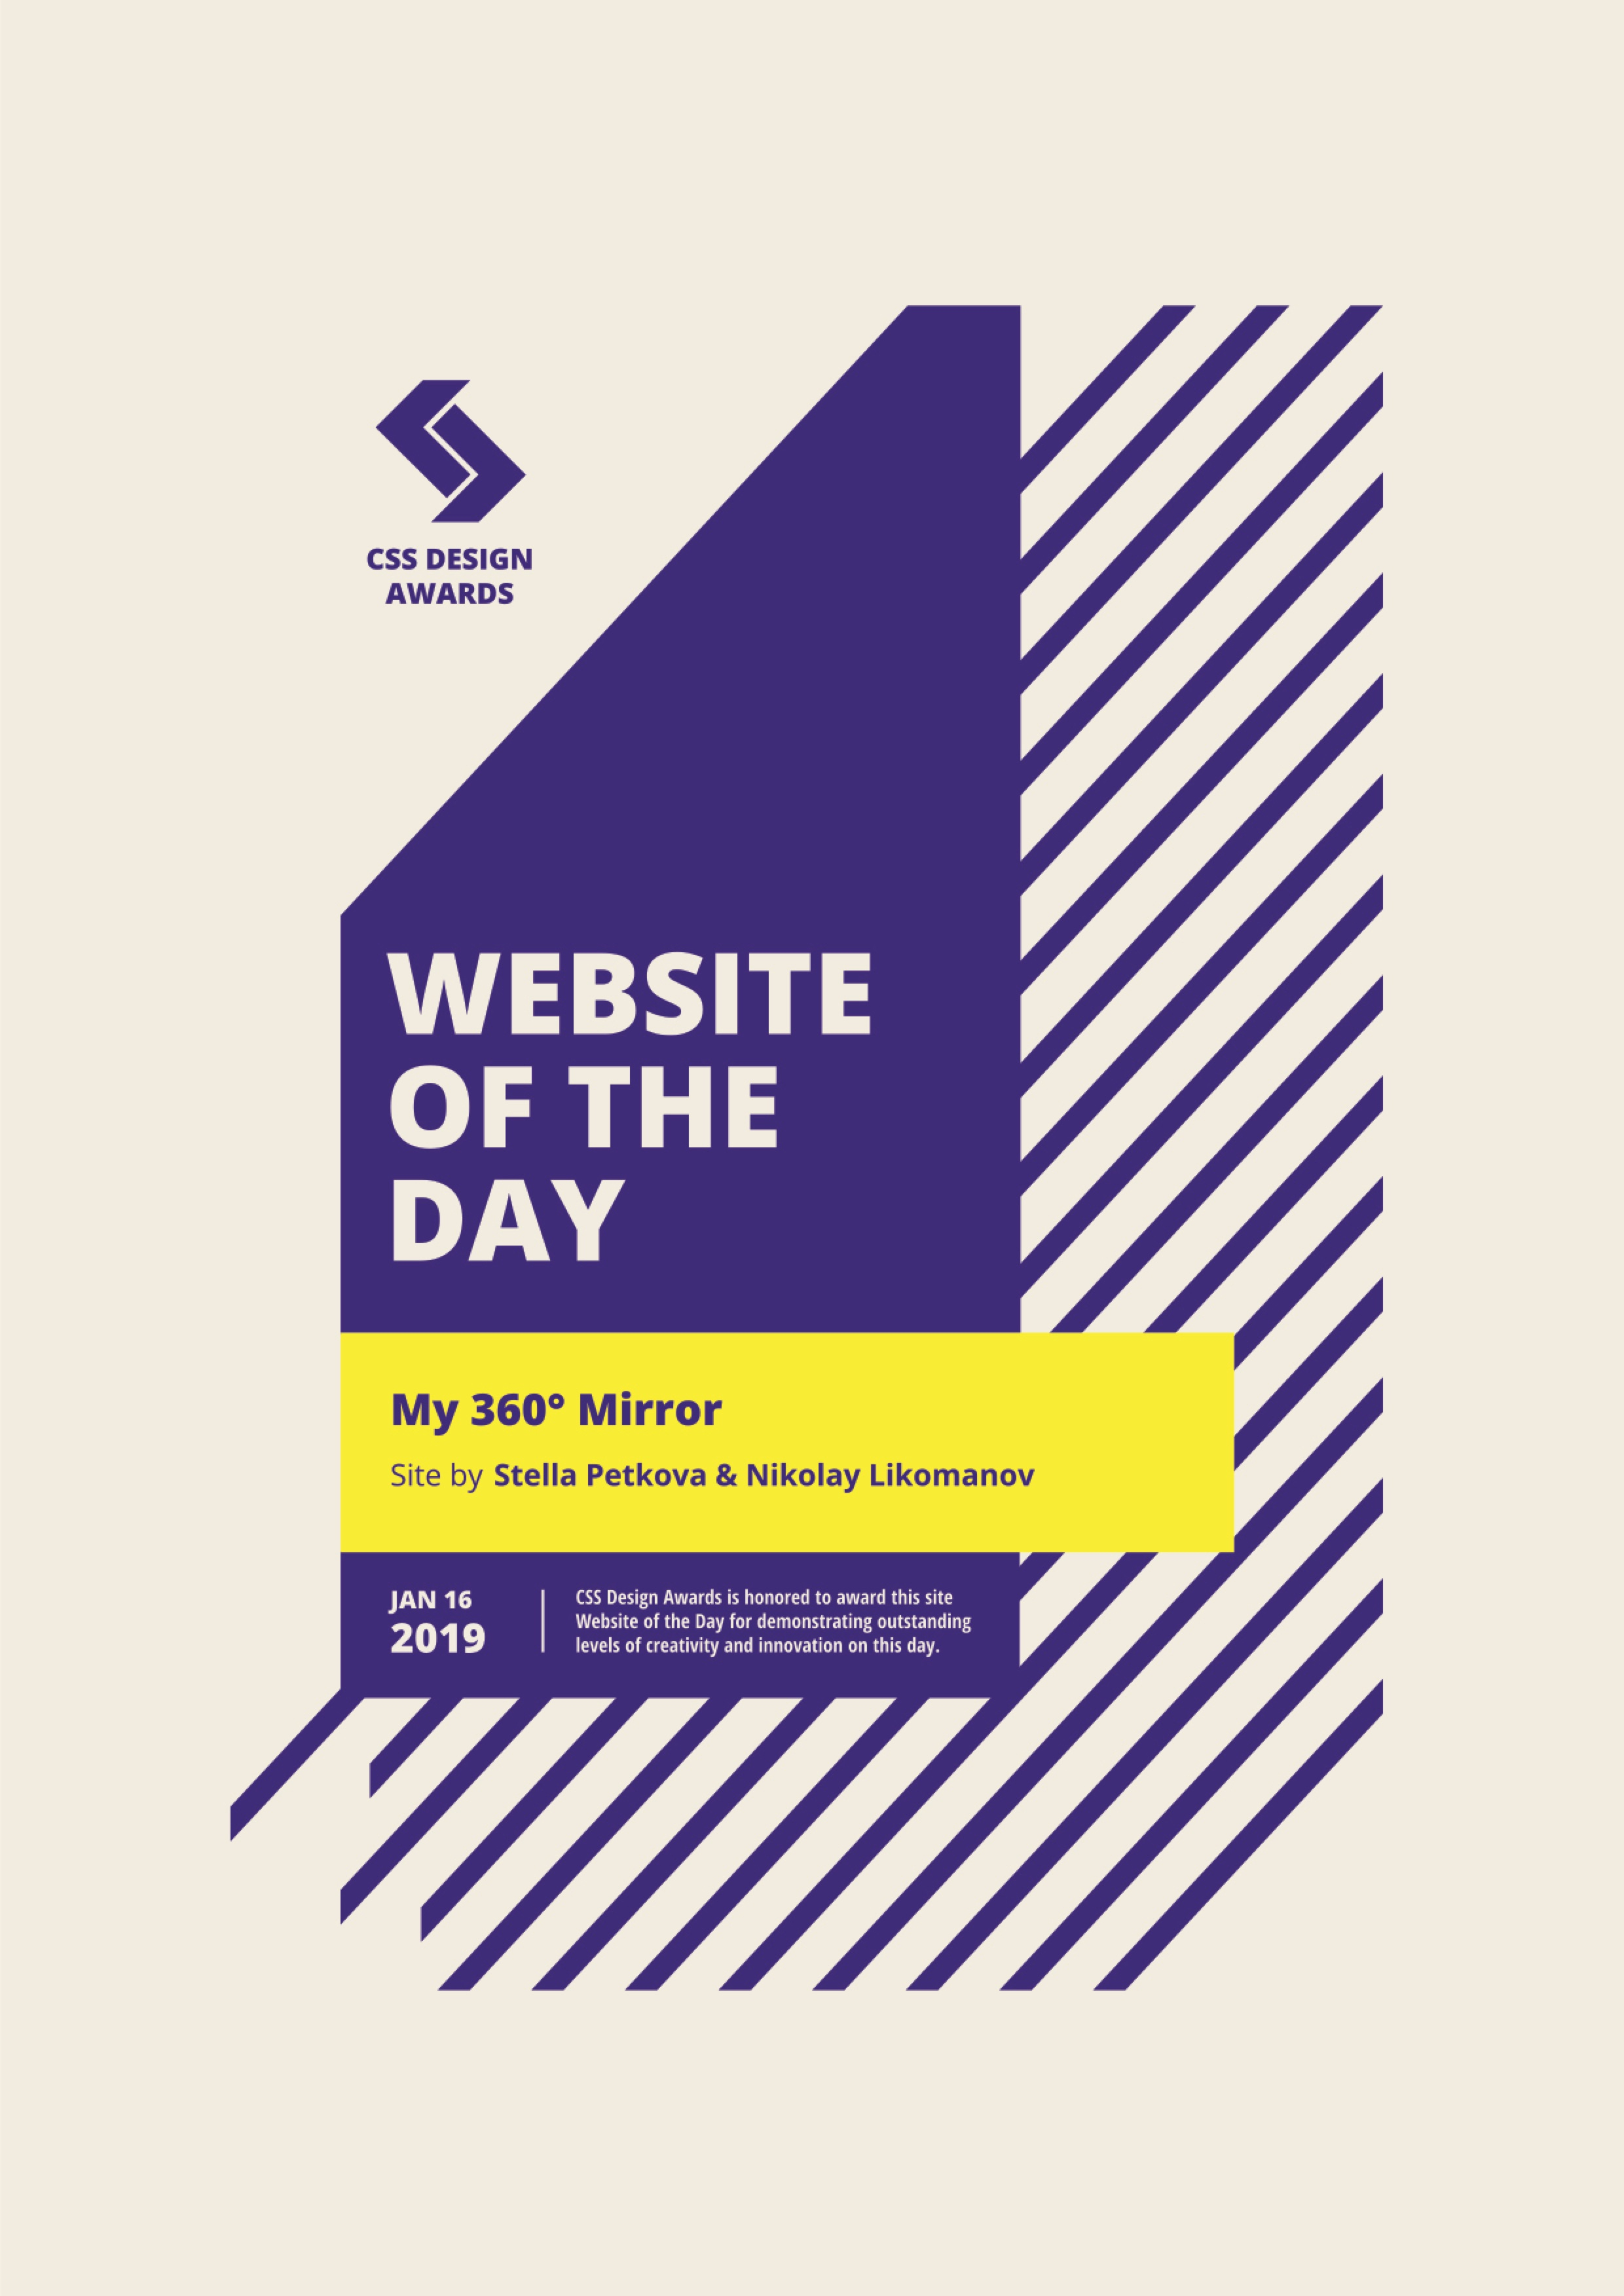 CSS Design Awards Site of the day Certificate - My 360 Mirror